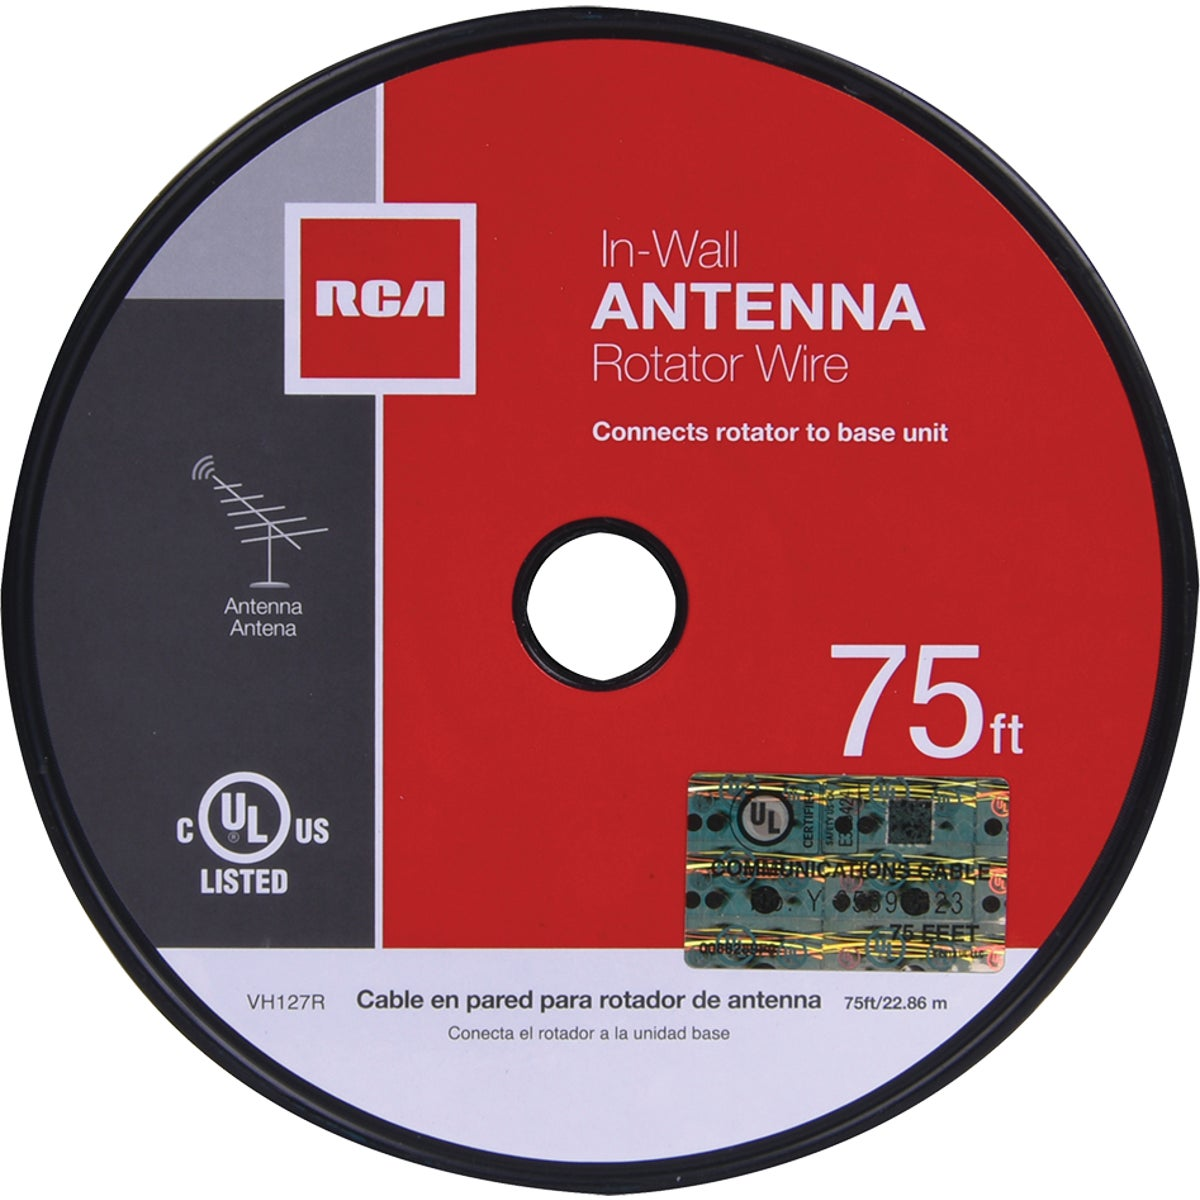 ANTENNA ROTOR WIRE